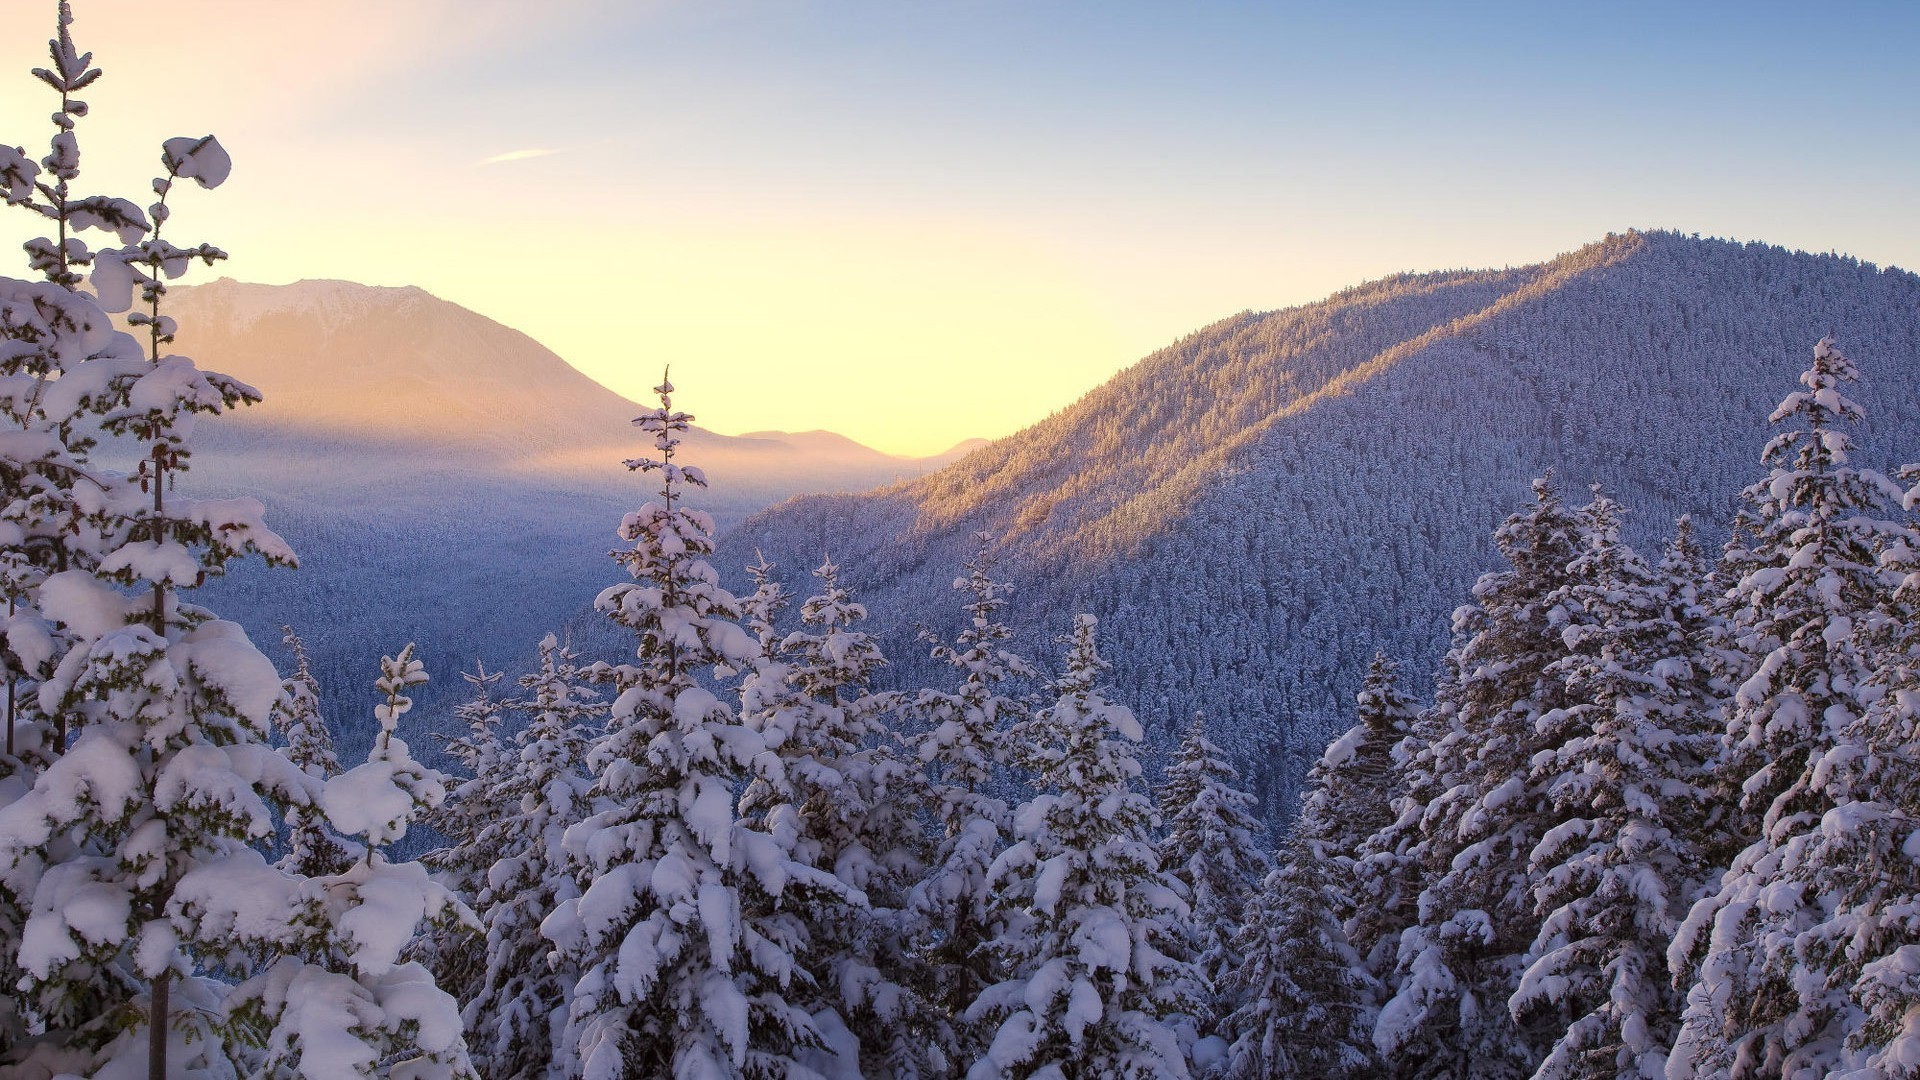 Snow-covered spruce trees, mountains, sunrise